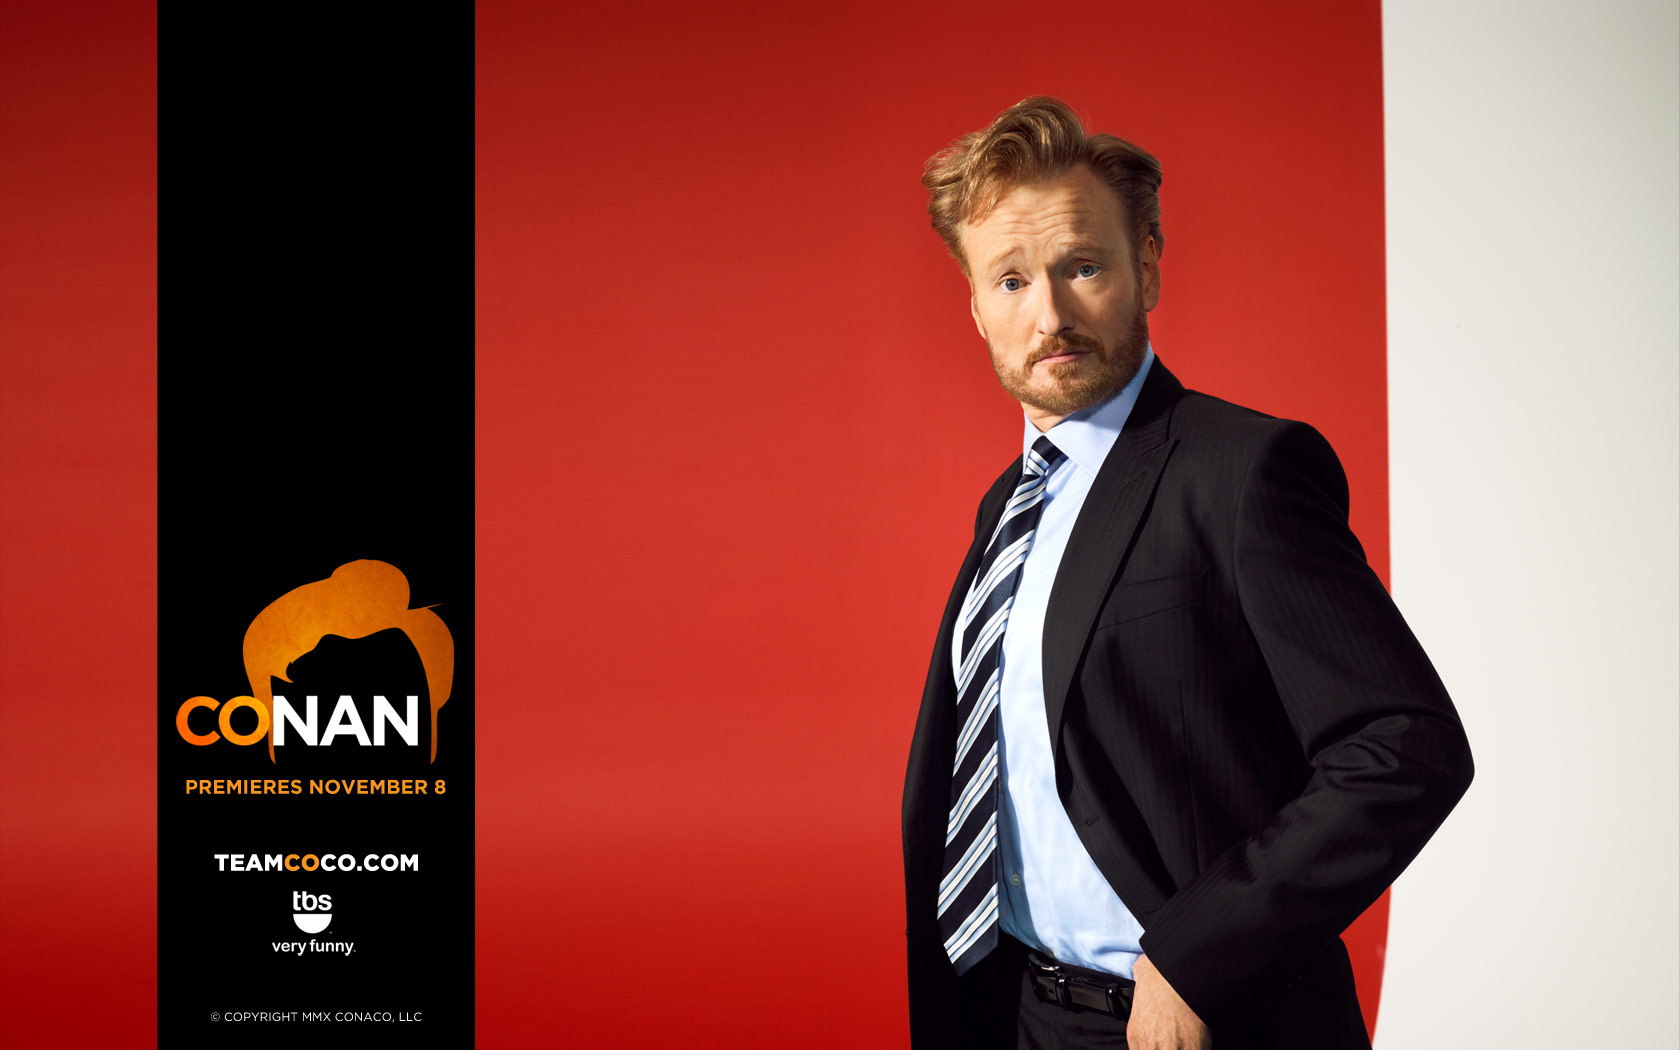 Conan O Brien Wallpaper